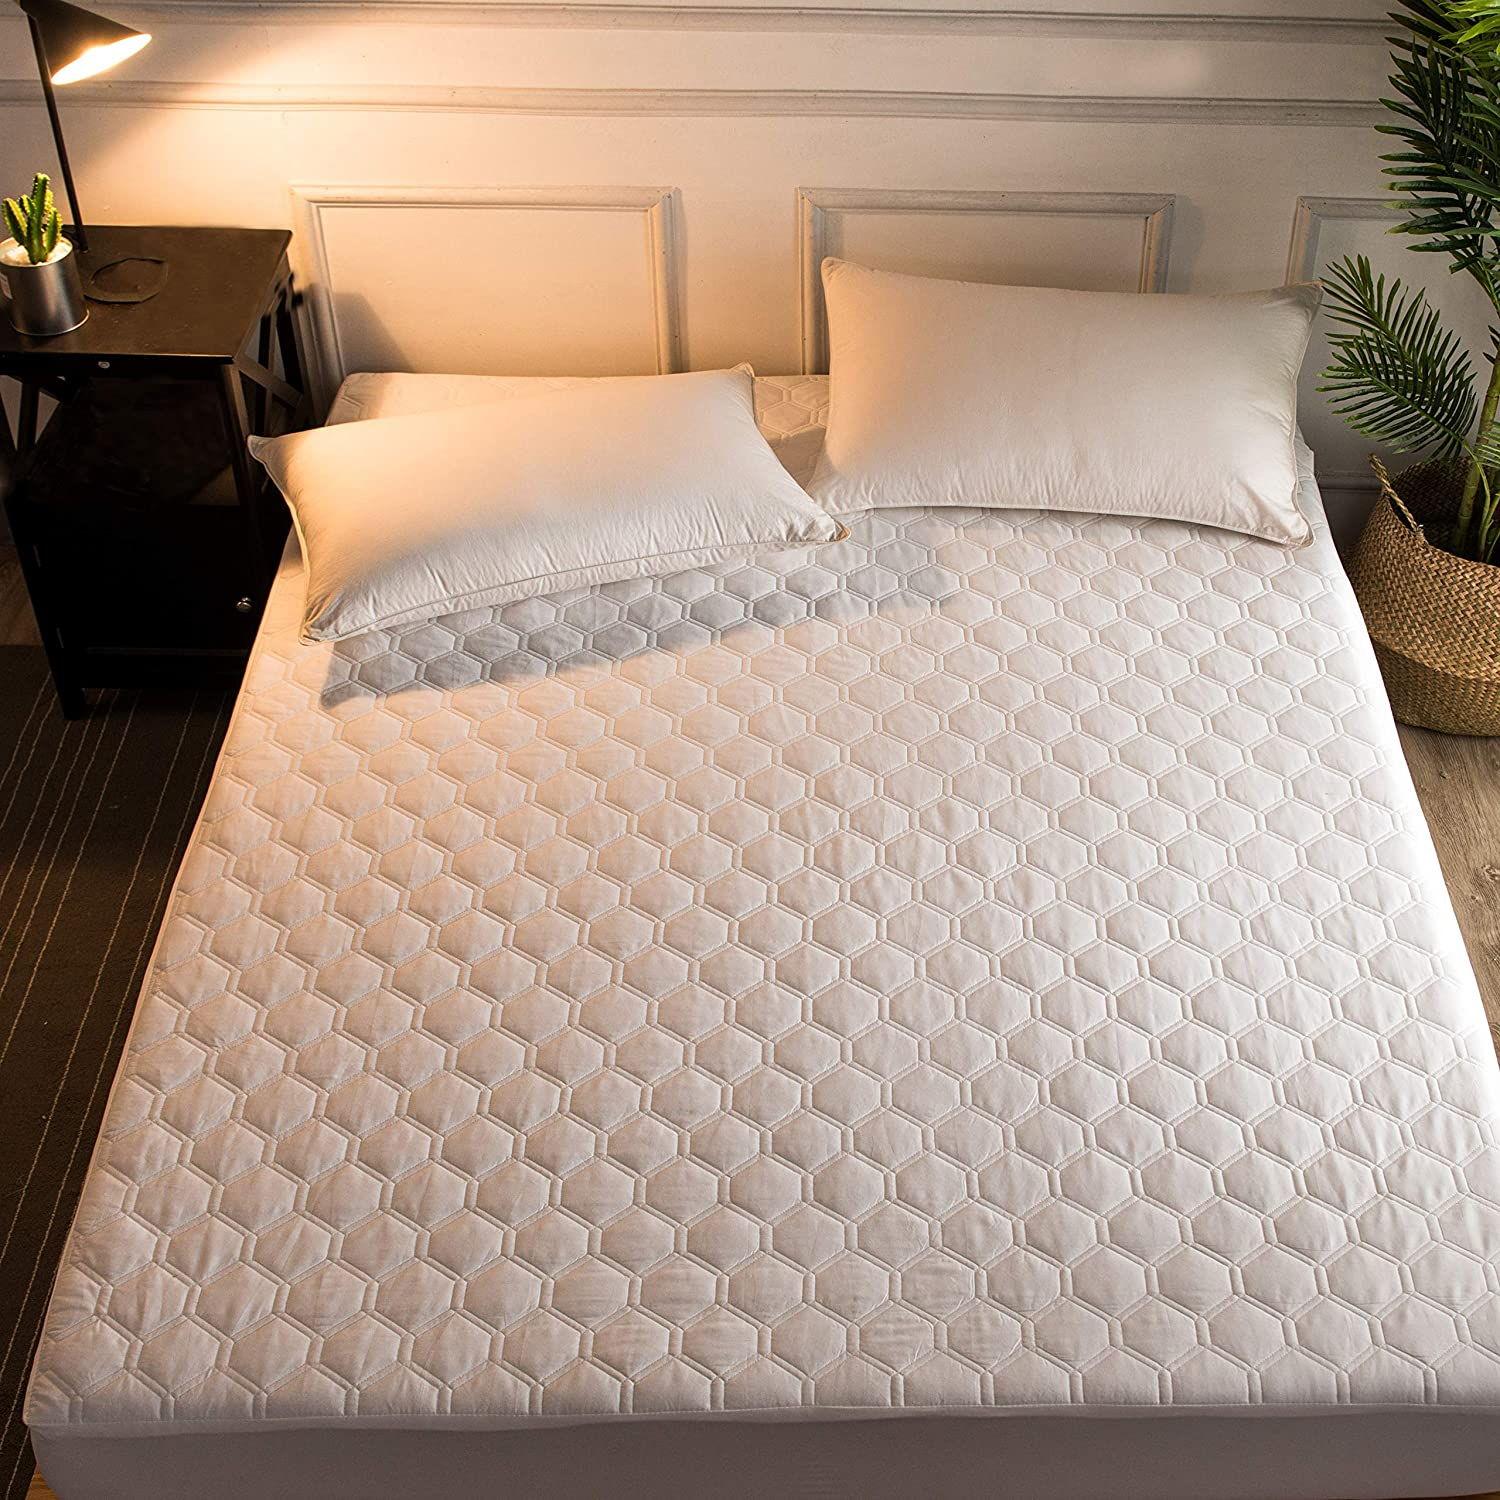 Hani Minna Premium Quilted Fitted Mattress Pad Protector Made with Natural Combed Cotton - Cooling and Breathable Mattress Toppers (Queen)